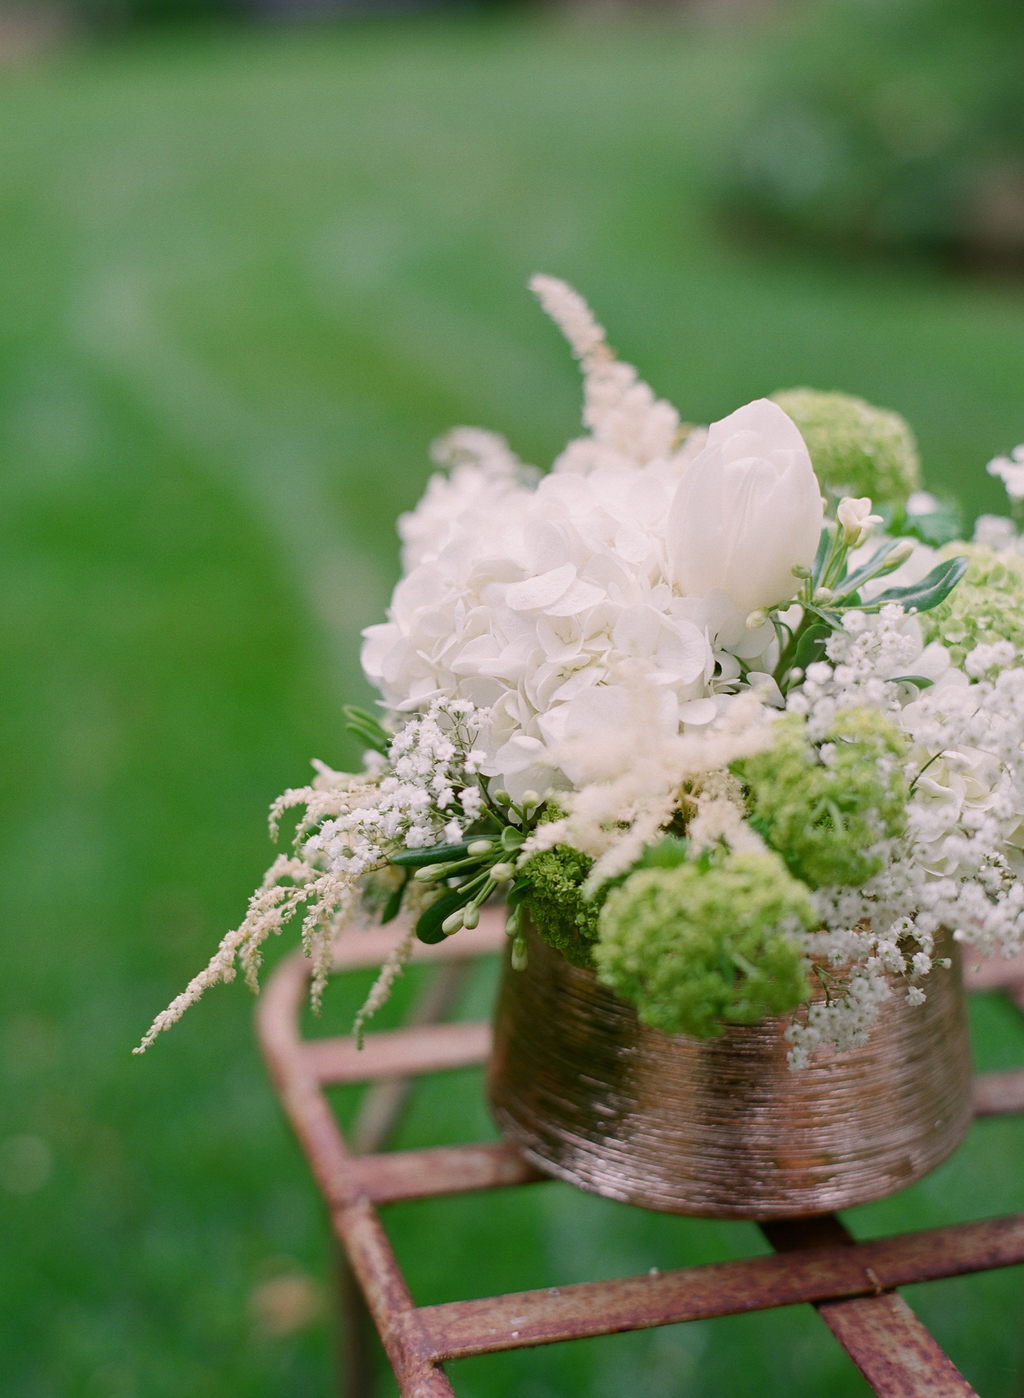 Styled-wedding-santa-barbara-chic-beaux-arts-photographie-italian-bohemian-wedding-venue-garden-flowers-white-bouquet-018.full